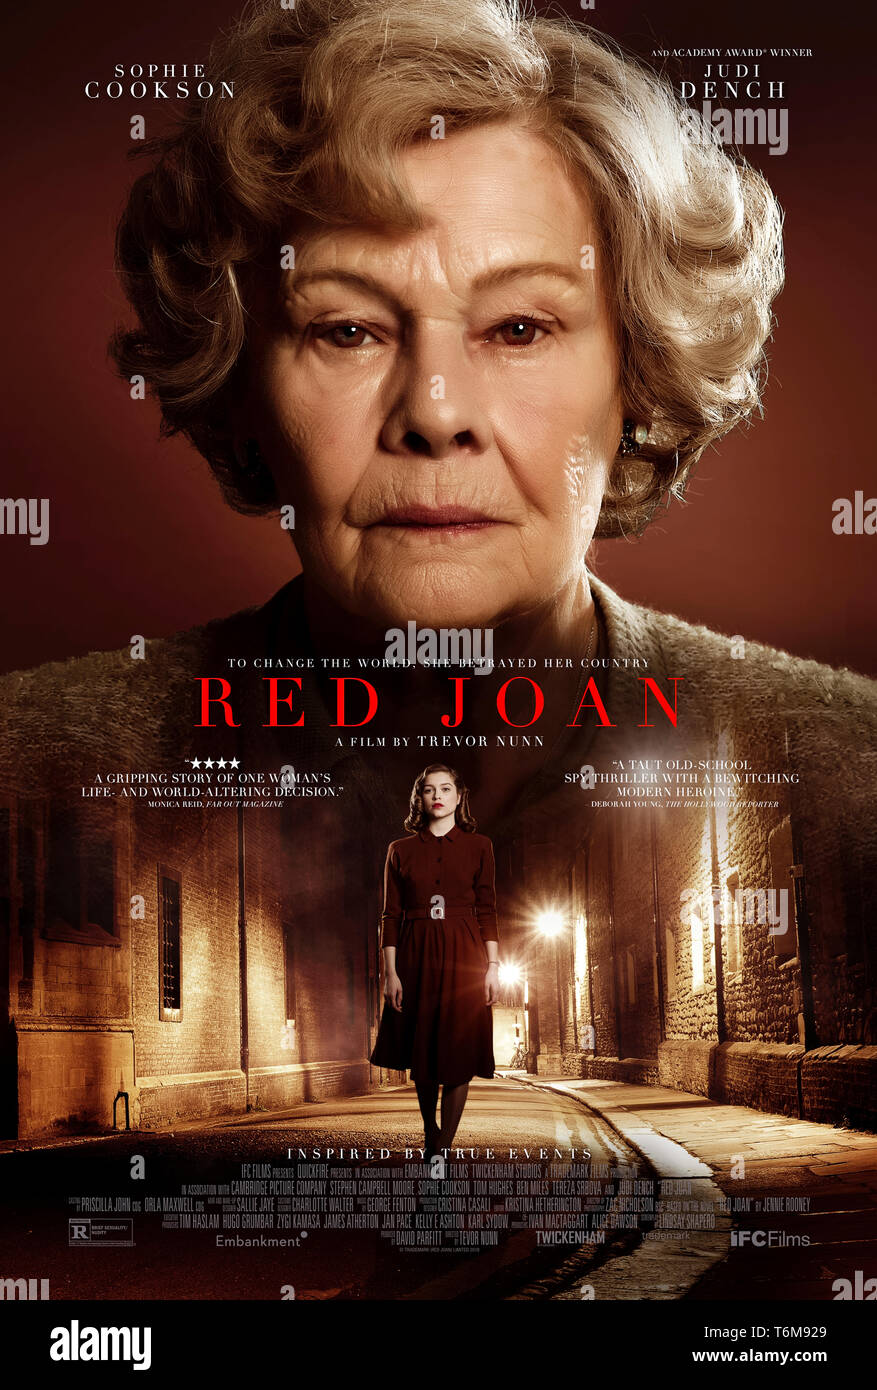 Red Joan (2018) directed by Trevor Nunn and starring Judi Dench, Sophie Cookson, Stephen Campbell Moore and Tom Hughes. British spy drama about the exposure of a female spy who betrayed her country for decades. - Stock Image